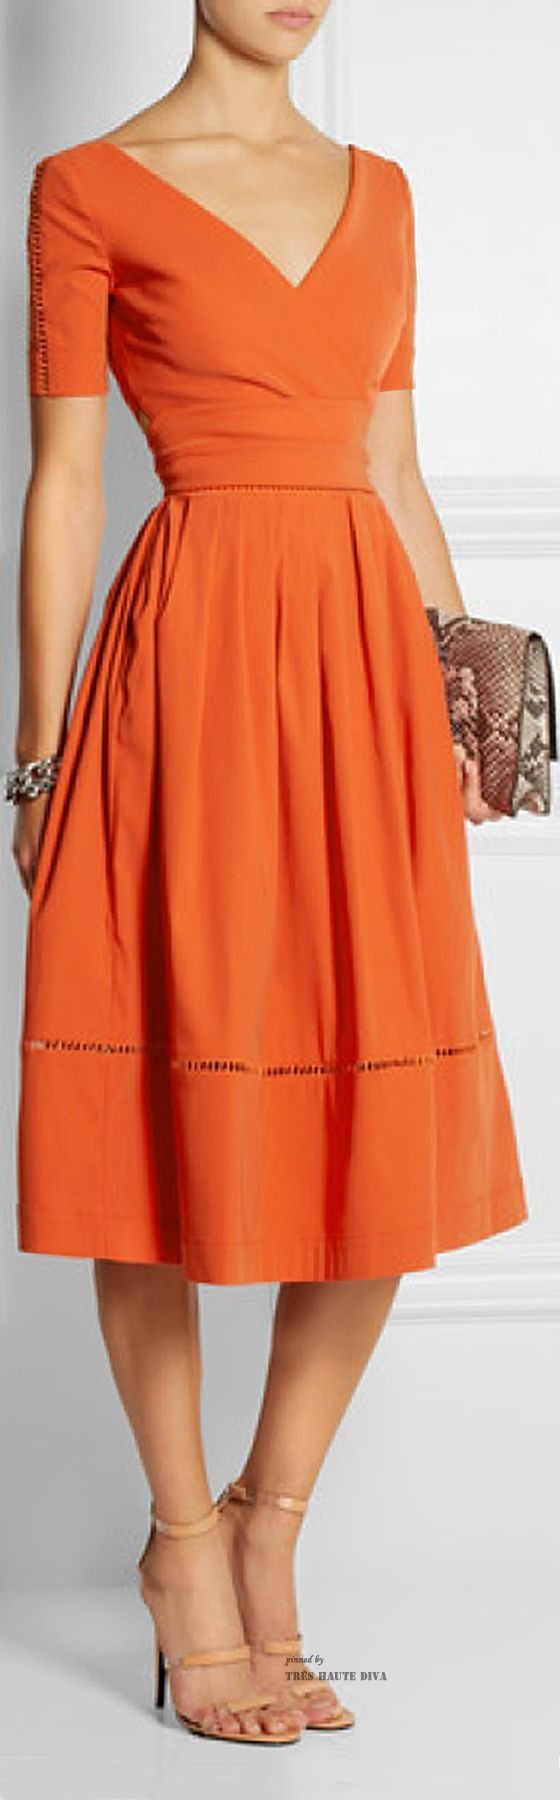 Orange vintage style 50s spring midi dress- love the color, sleeves and neckline